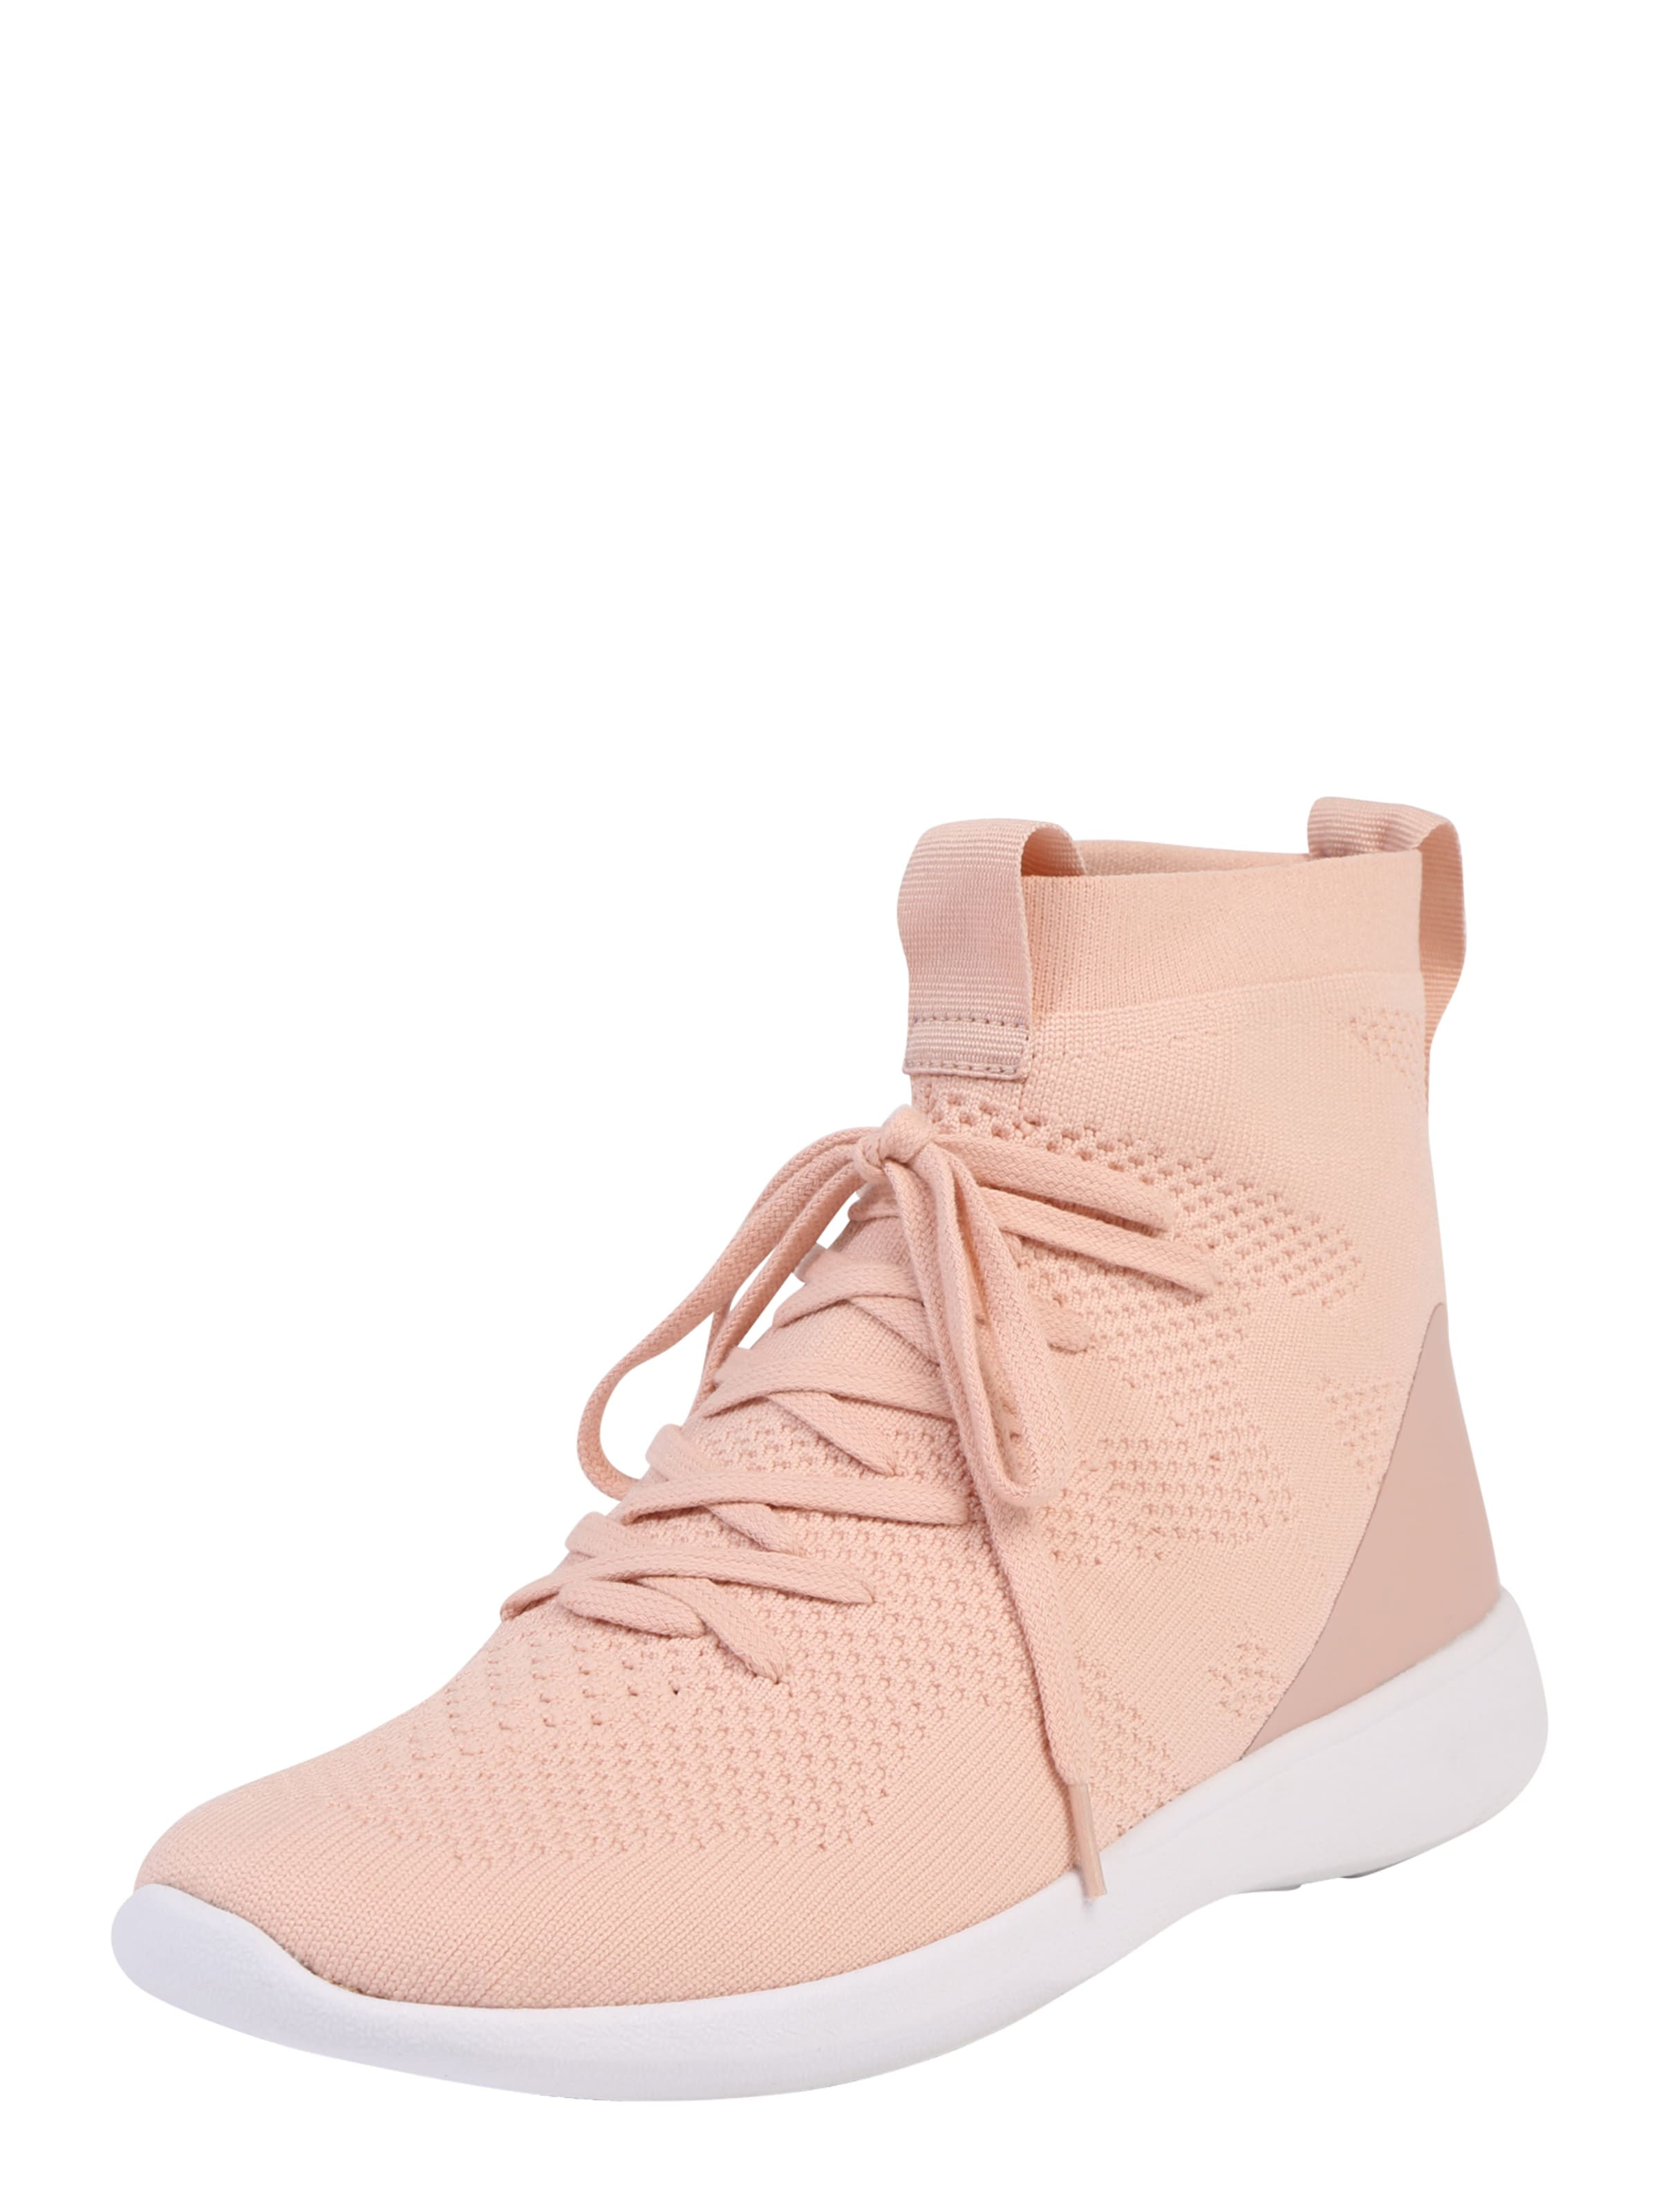 CALL IT SPRING Hoher Sneaker  AIDIEN